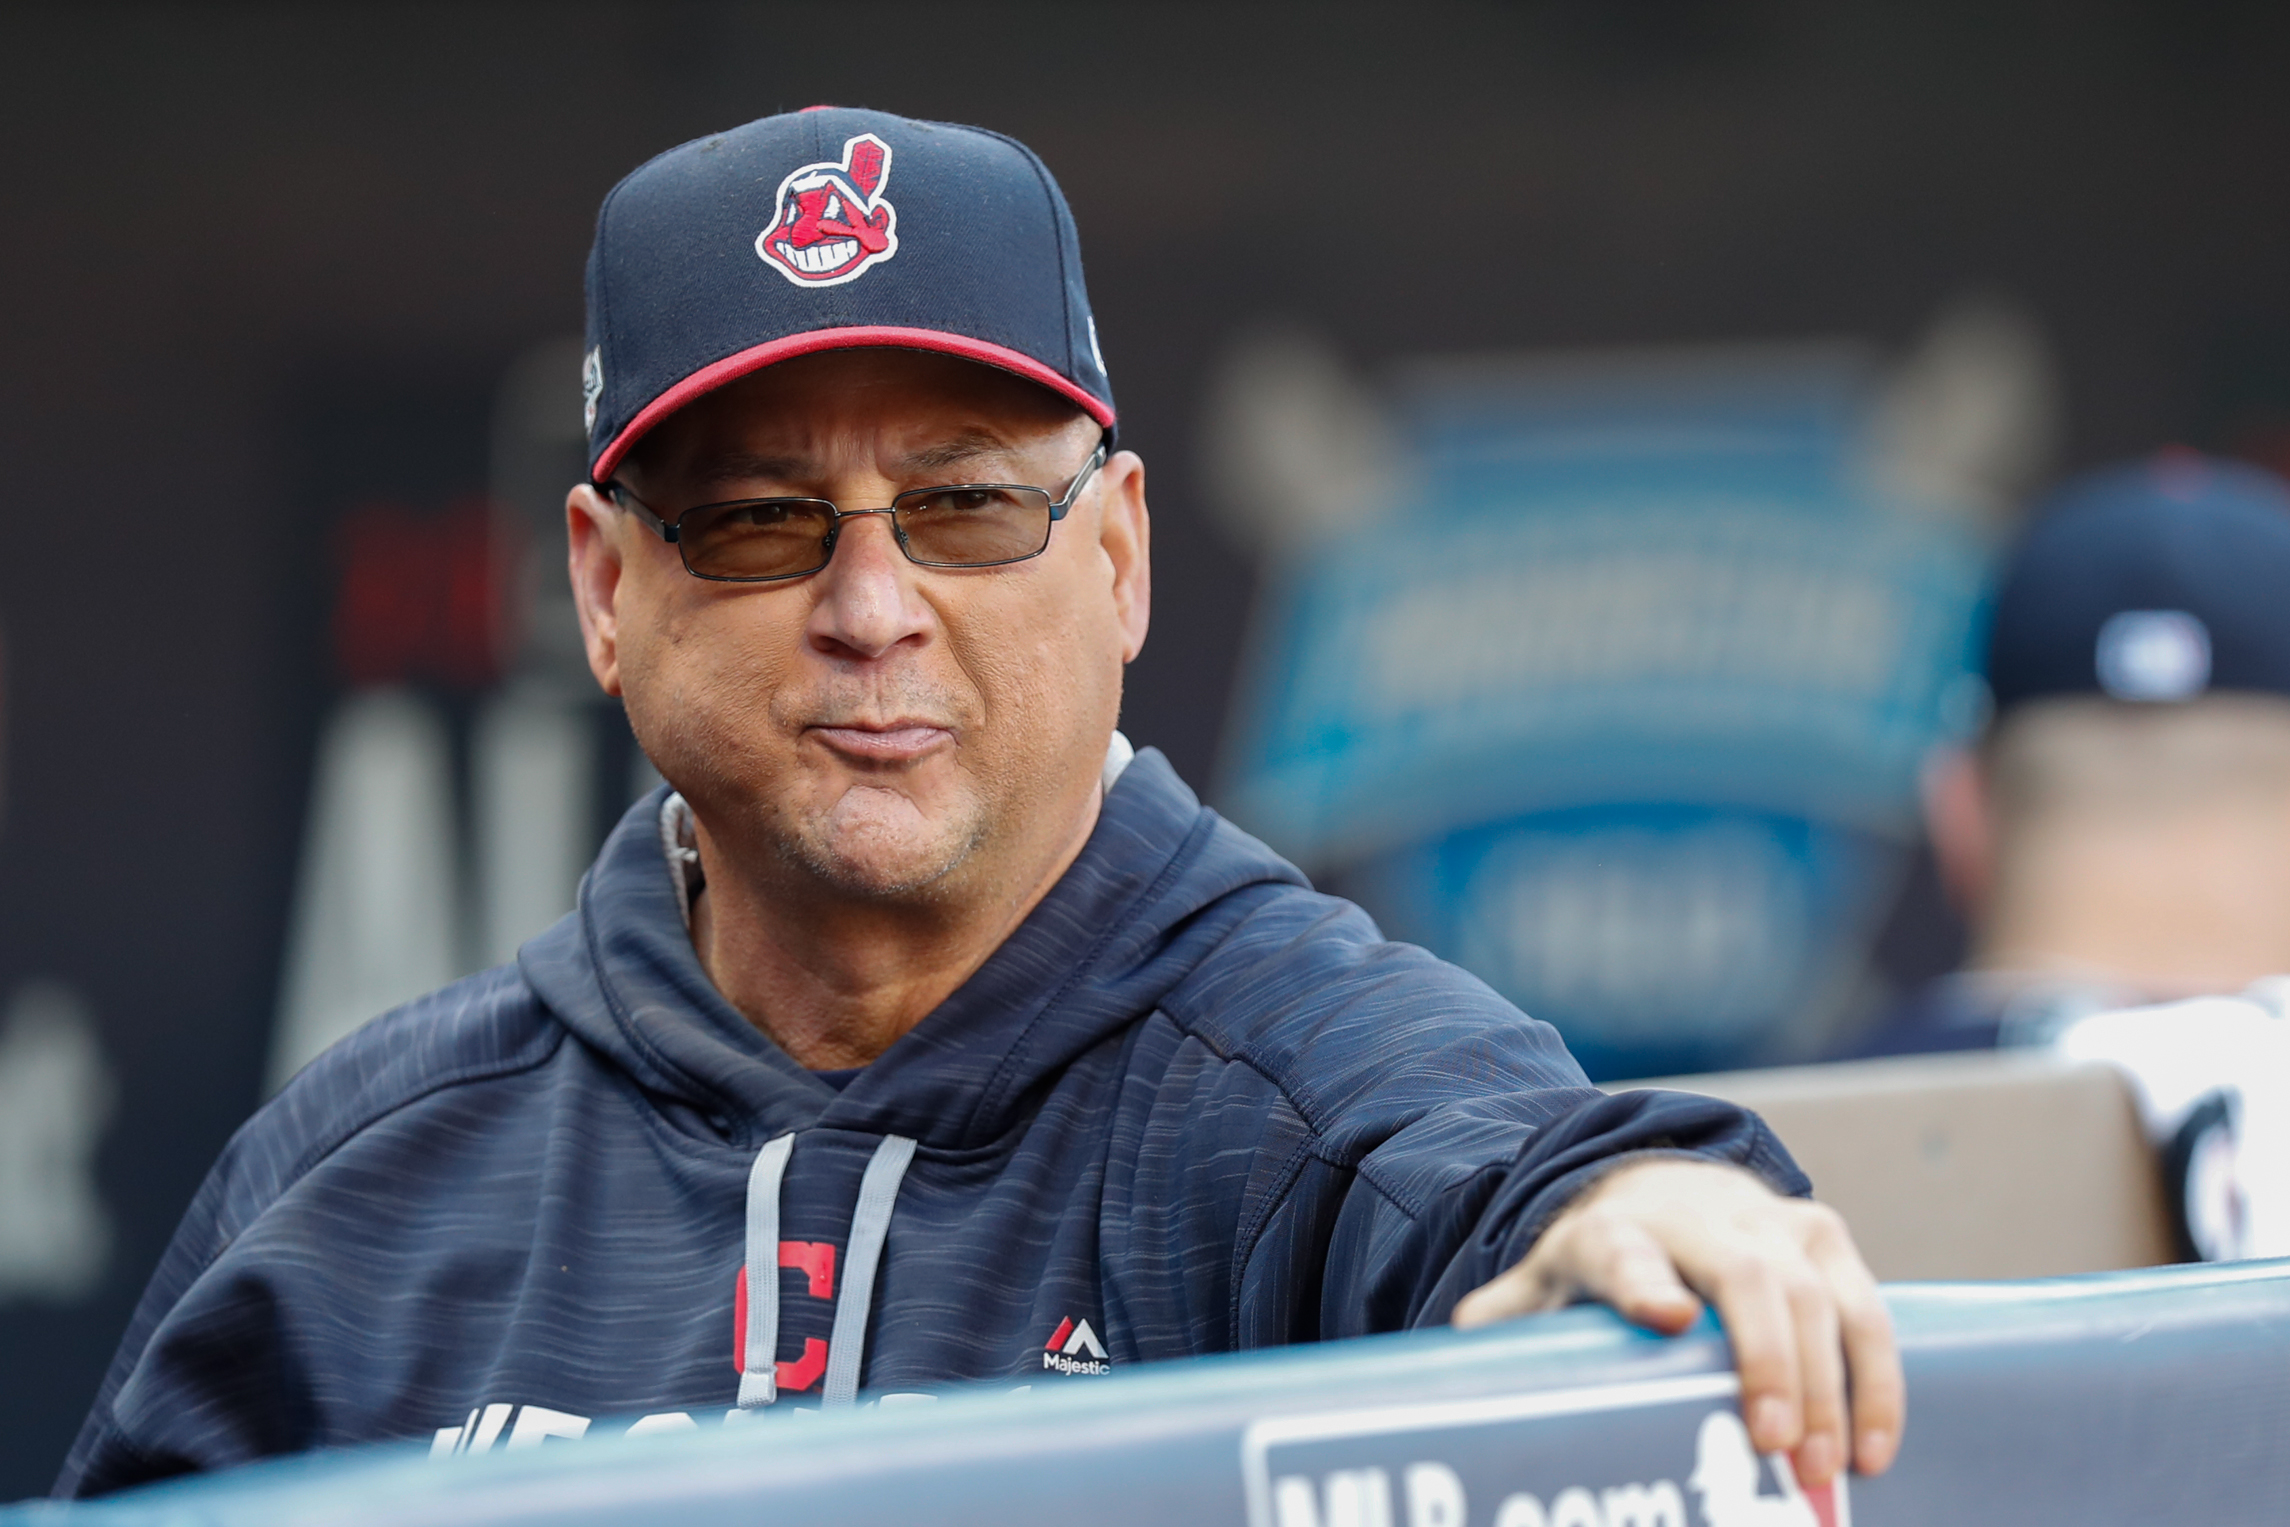 Cleveland Indians manager Terry Francona.